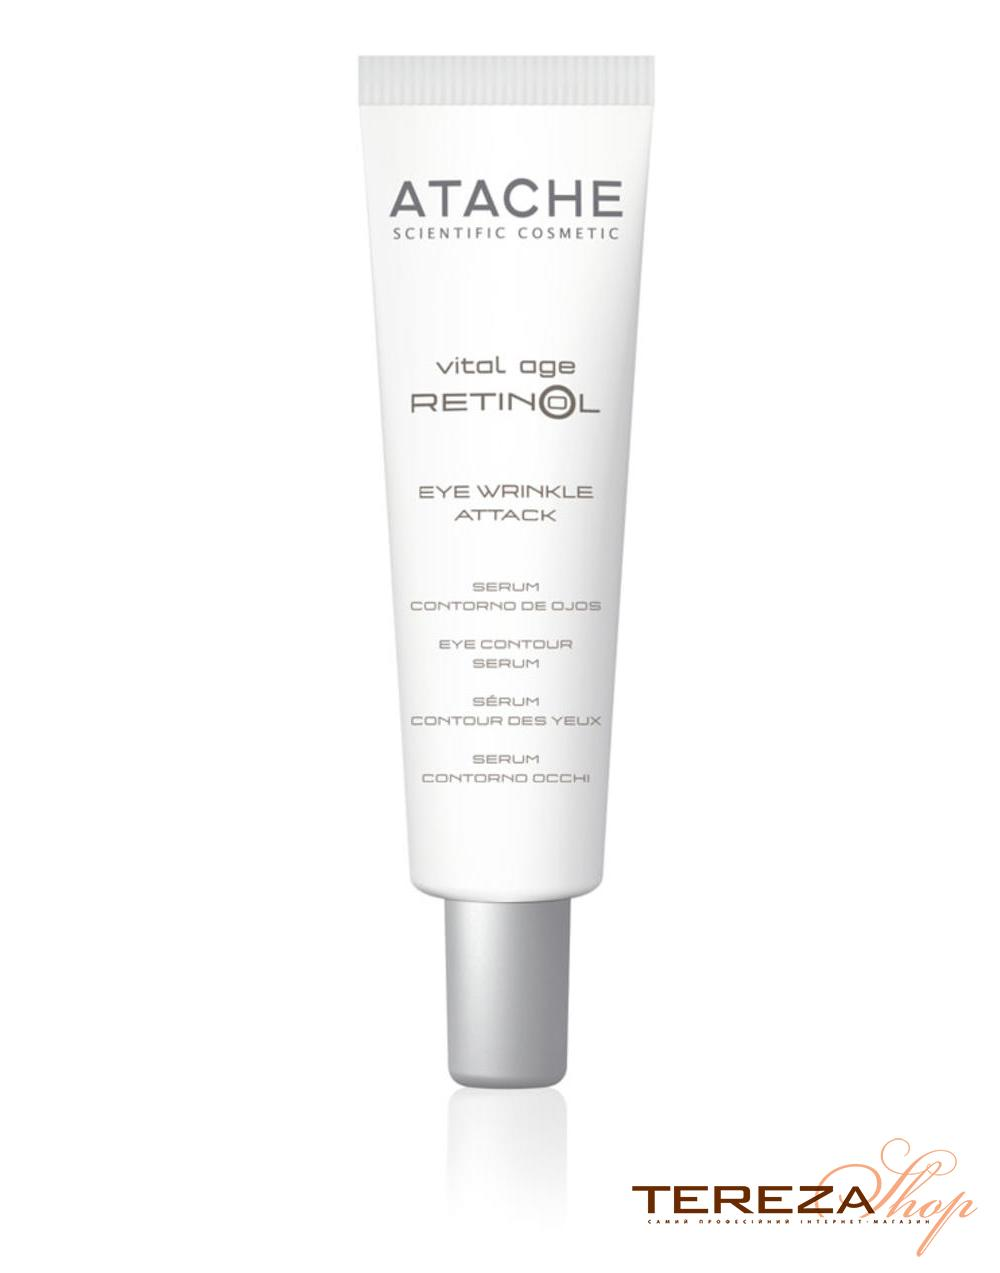 RETINOL EYE WRINKLE ATTACK ATACHE | Tereza Shop